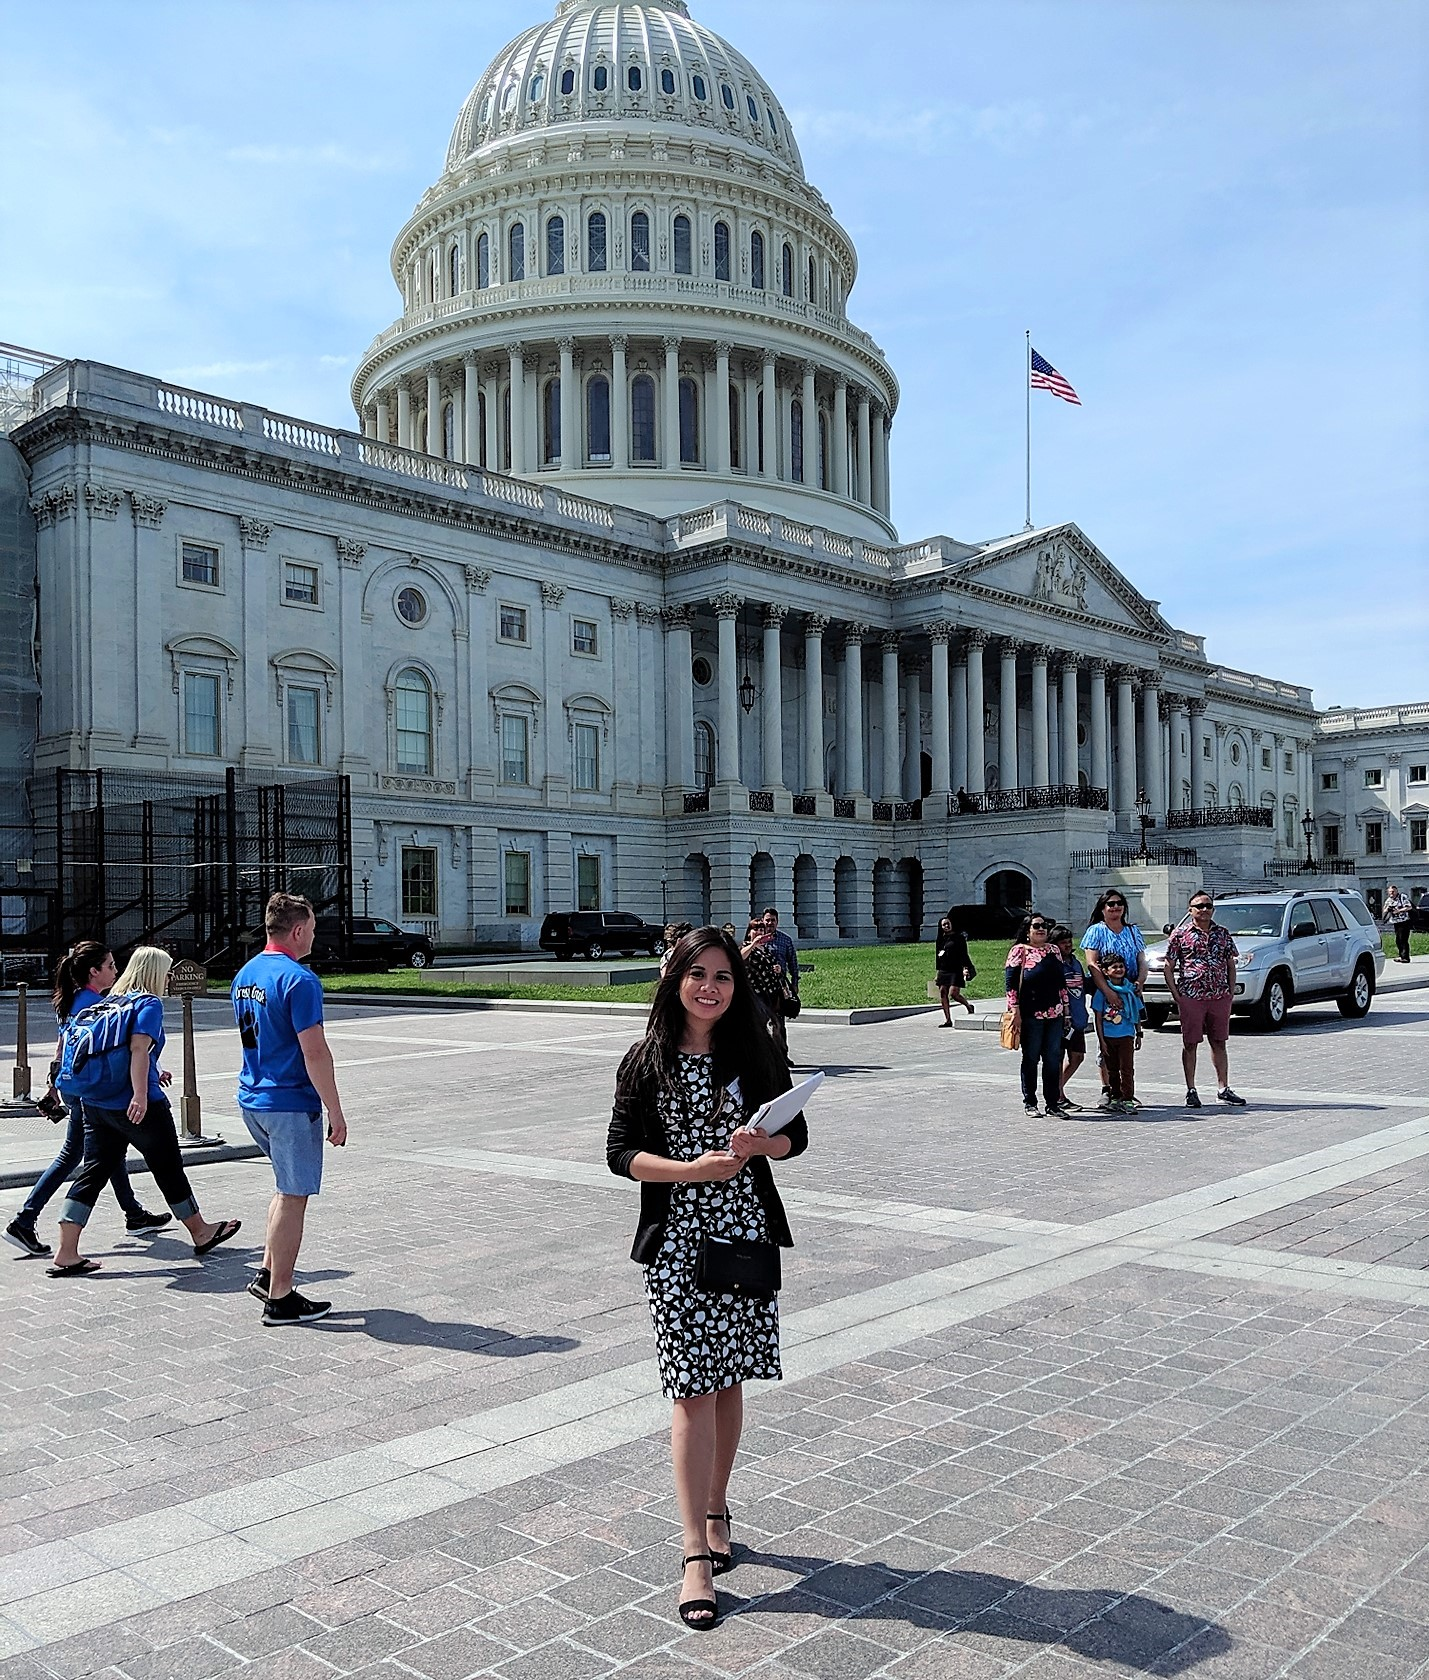 Photo of a woman holding some papers posed in front of the U.S. Capitol. It is a bright, sunny day and in the background tourists are walking around